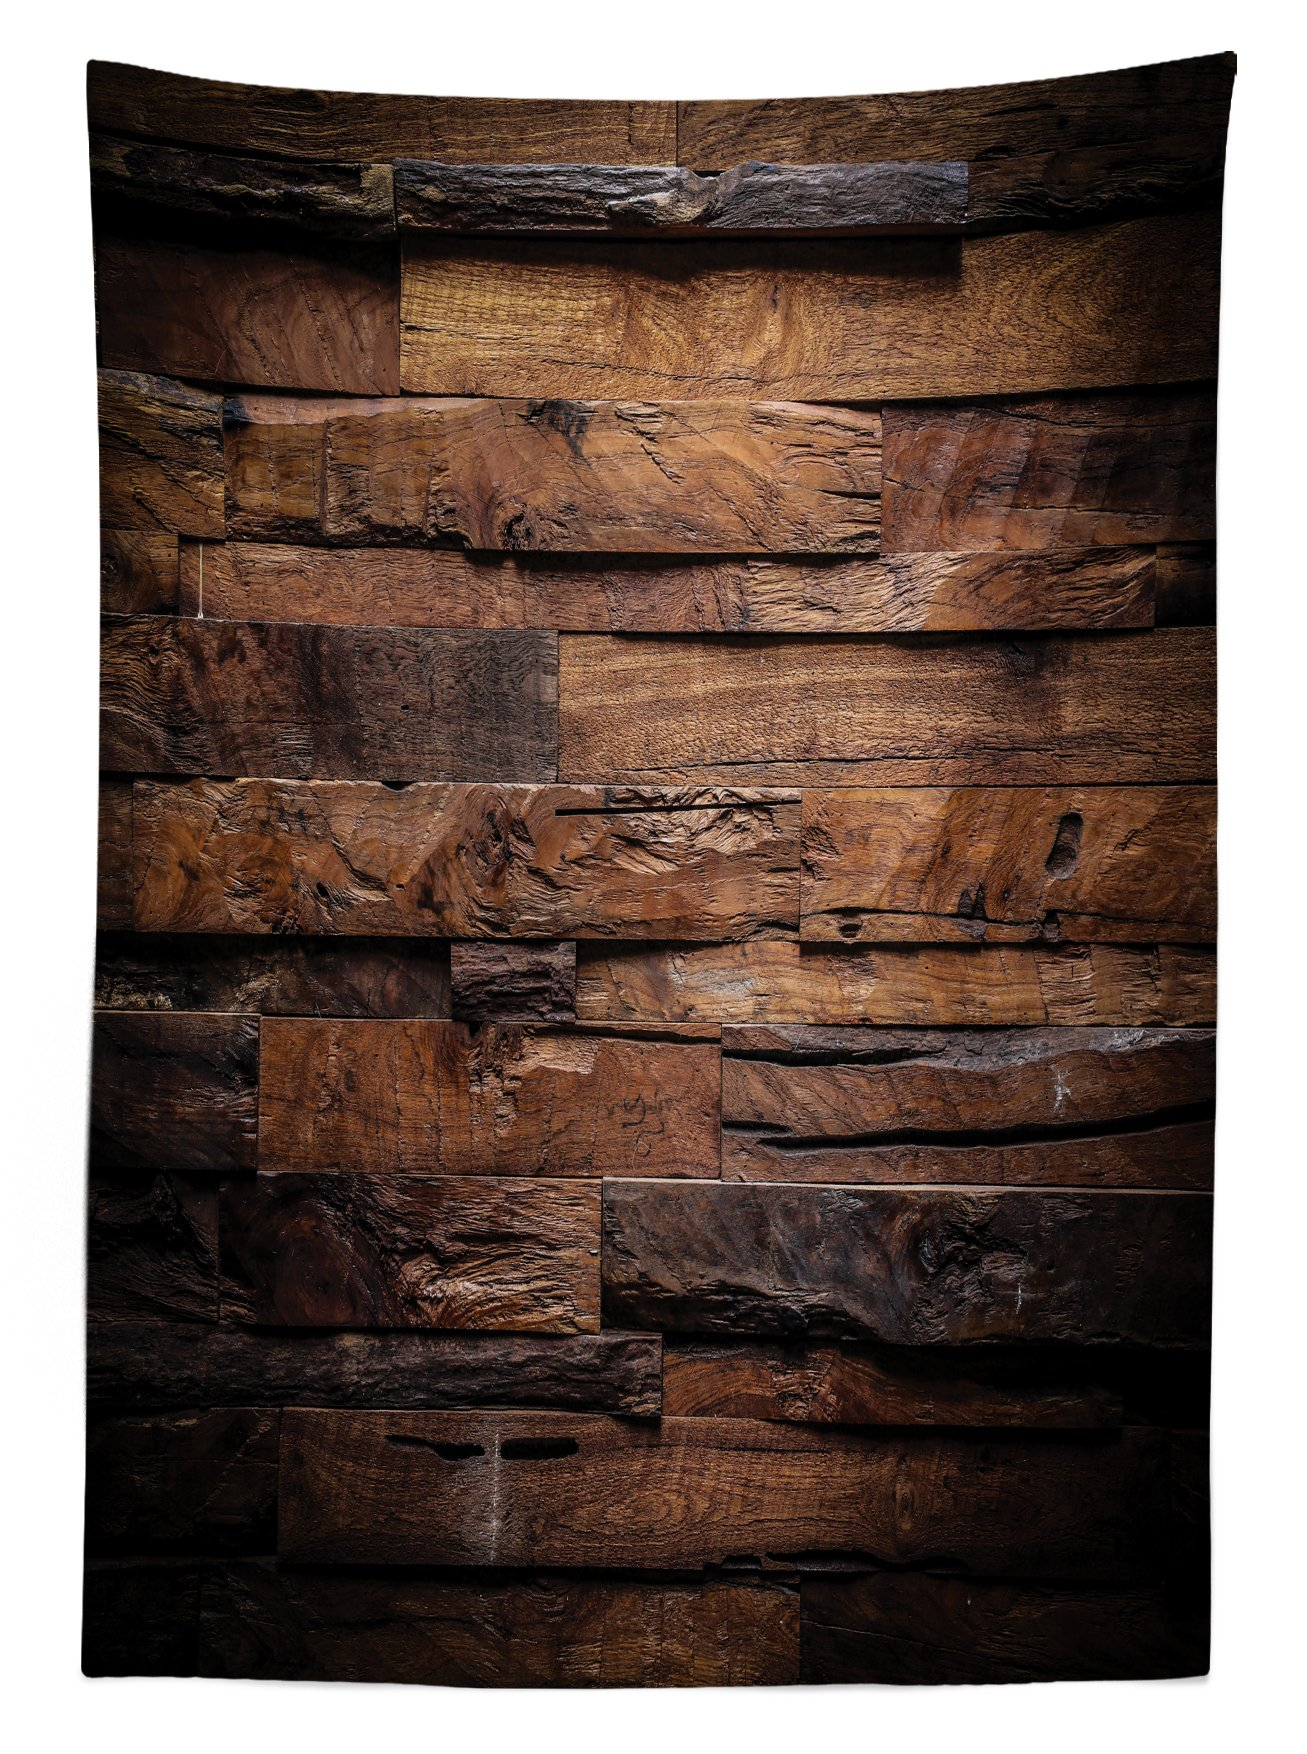 Ambesonne Chocolate Tablecloth, Rough Dark Timber Texture Image Rustic Country Theme Hardwood Carpentry, Dining Room Kitchen Rectangular Table Cover, 60 W X 84 L inches, Brown Dark Brown by Ambesonne (Image #2)